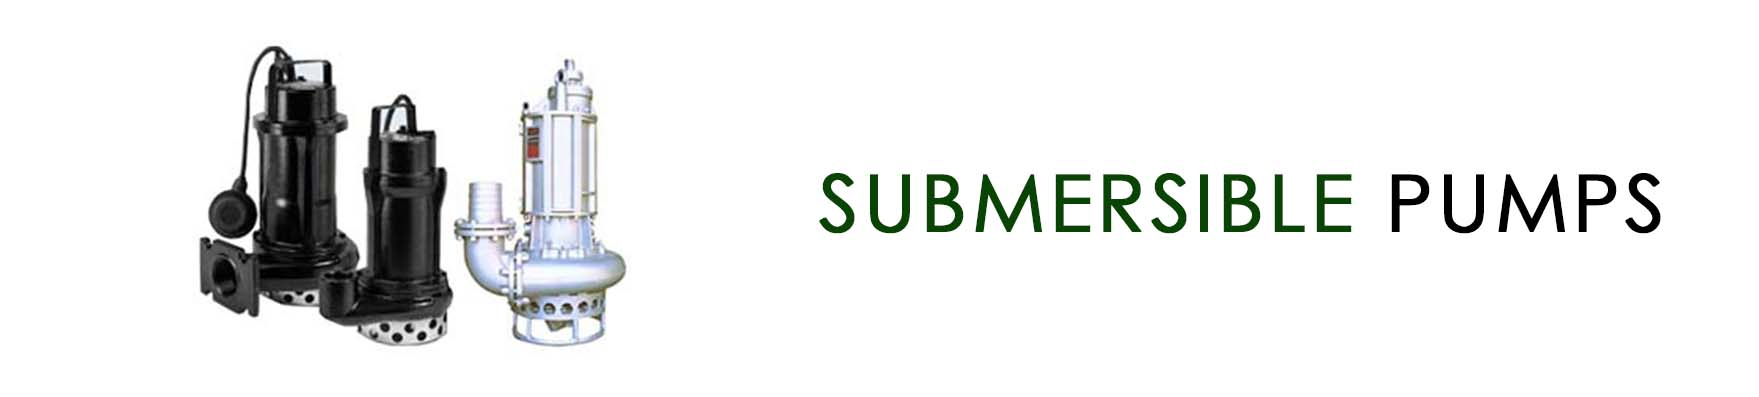 Submersible Pumps NEW BANNER – replace de-watering